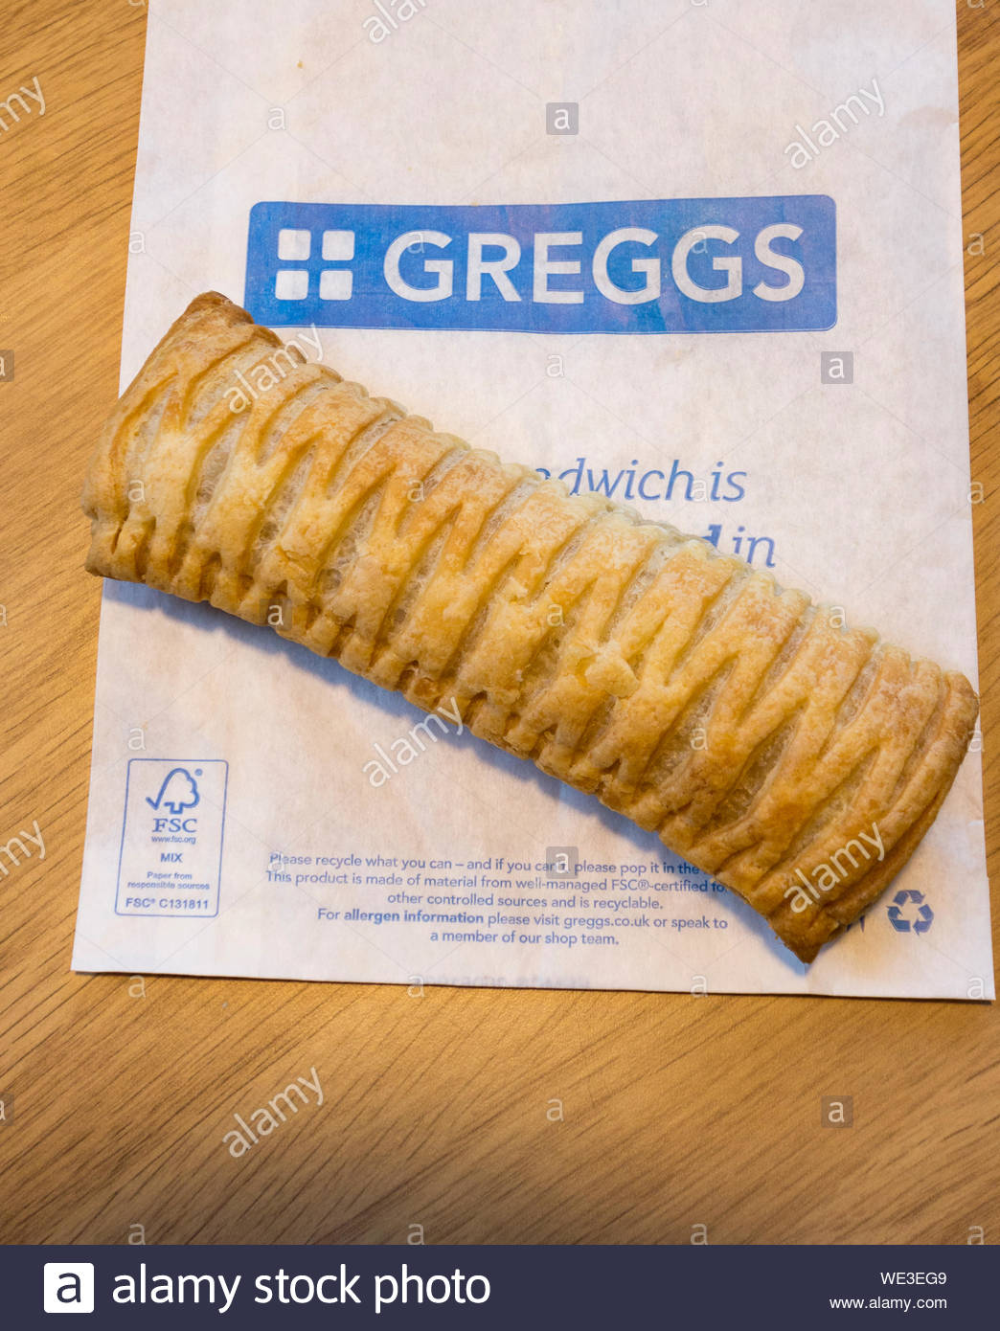 A Greggs Vegan Friendly Sausage Roll Sitting On Top Of Some Greggs Packaging Stock Photo In 2020 Sausage Rolls Vegan Friendly Greggs